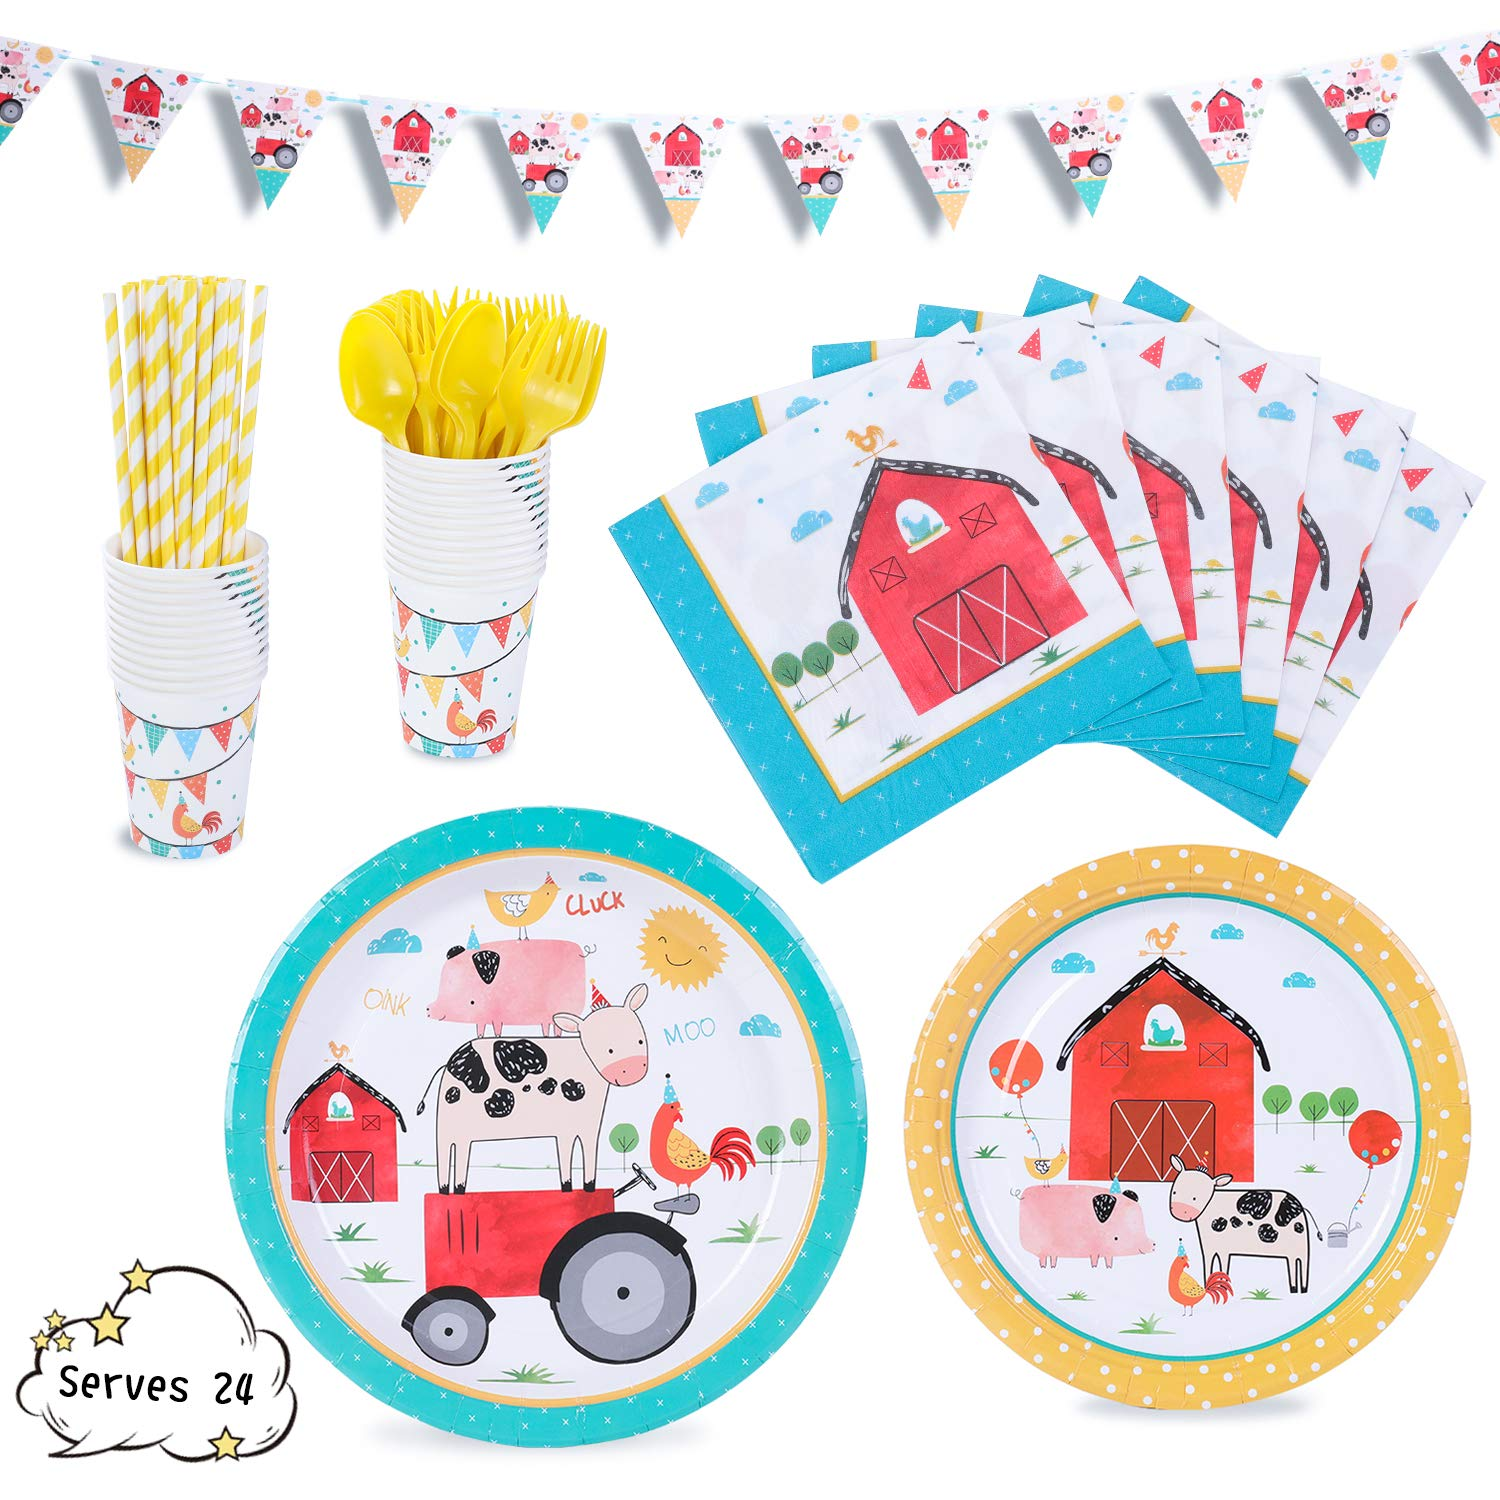 Farmhouse Party Supplies Decorations Barn Barnyard Fram Animals Dinnerware 169 Pcs Serves 24 Includes 7''&9'' Paper Plates Napkins Straws Knives Forks Cups Banner For Birthday, Farm Themed Parties, Serves 24 by Party Family